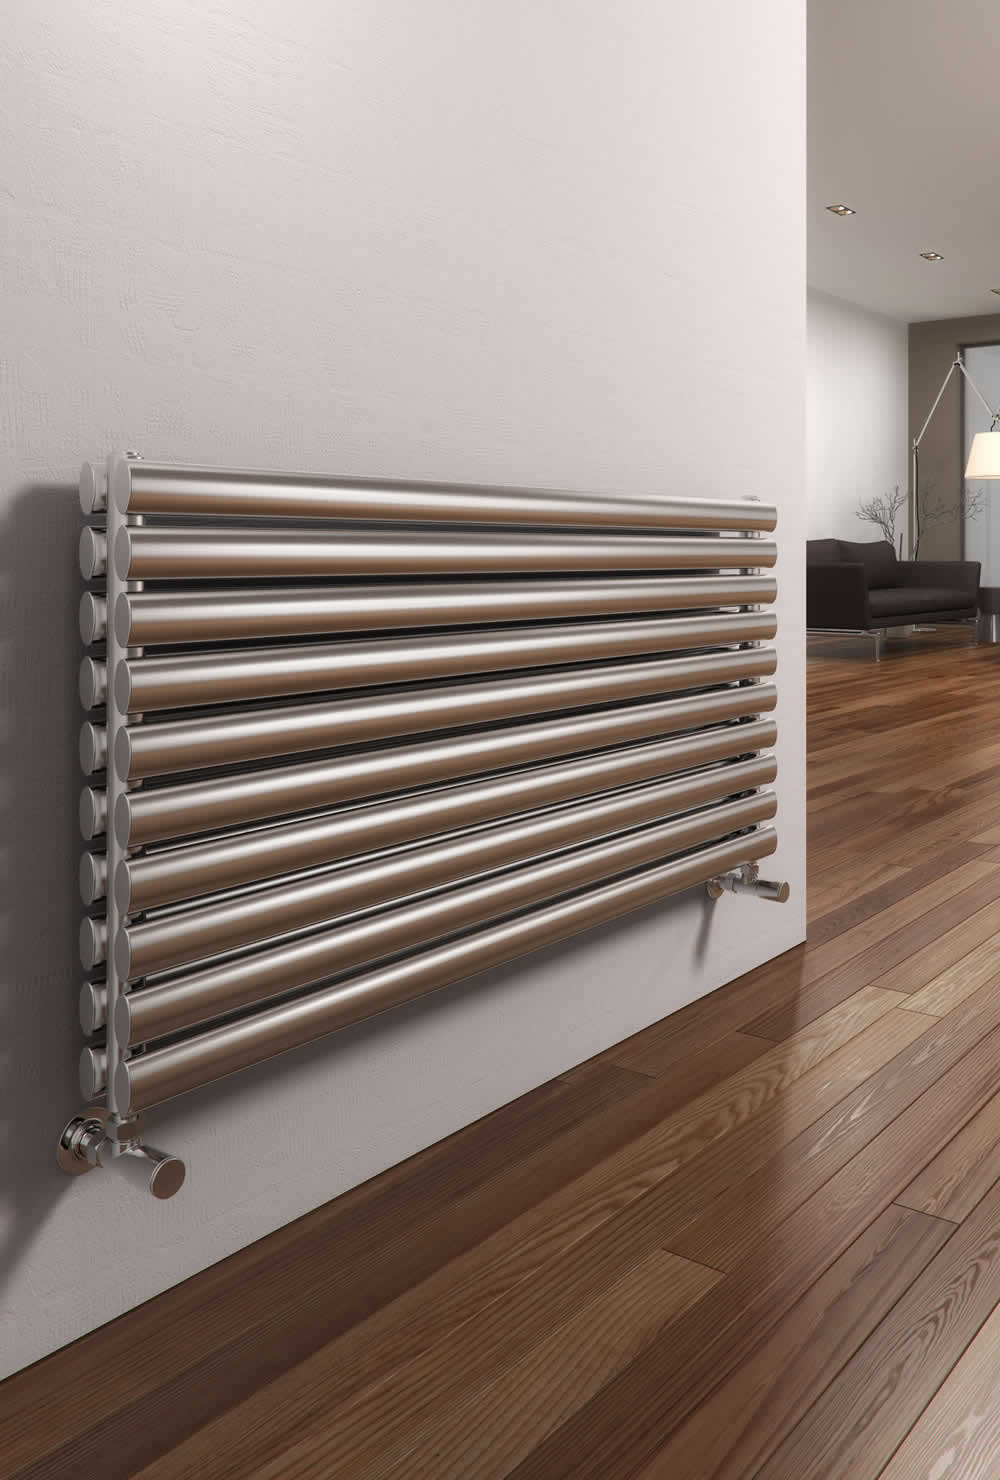 ARTENA 590 x 400 BRUSHED DBL STAINLESS STEEL RAD